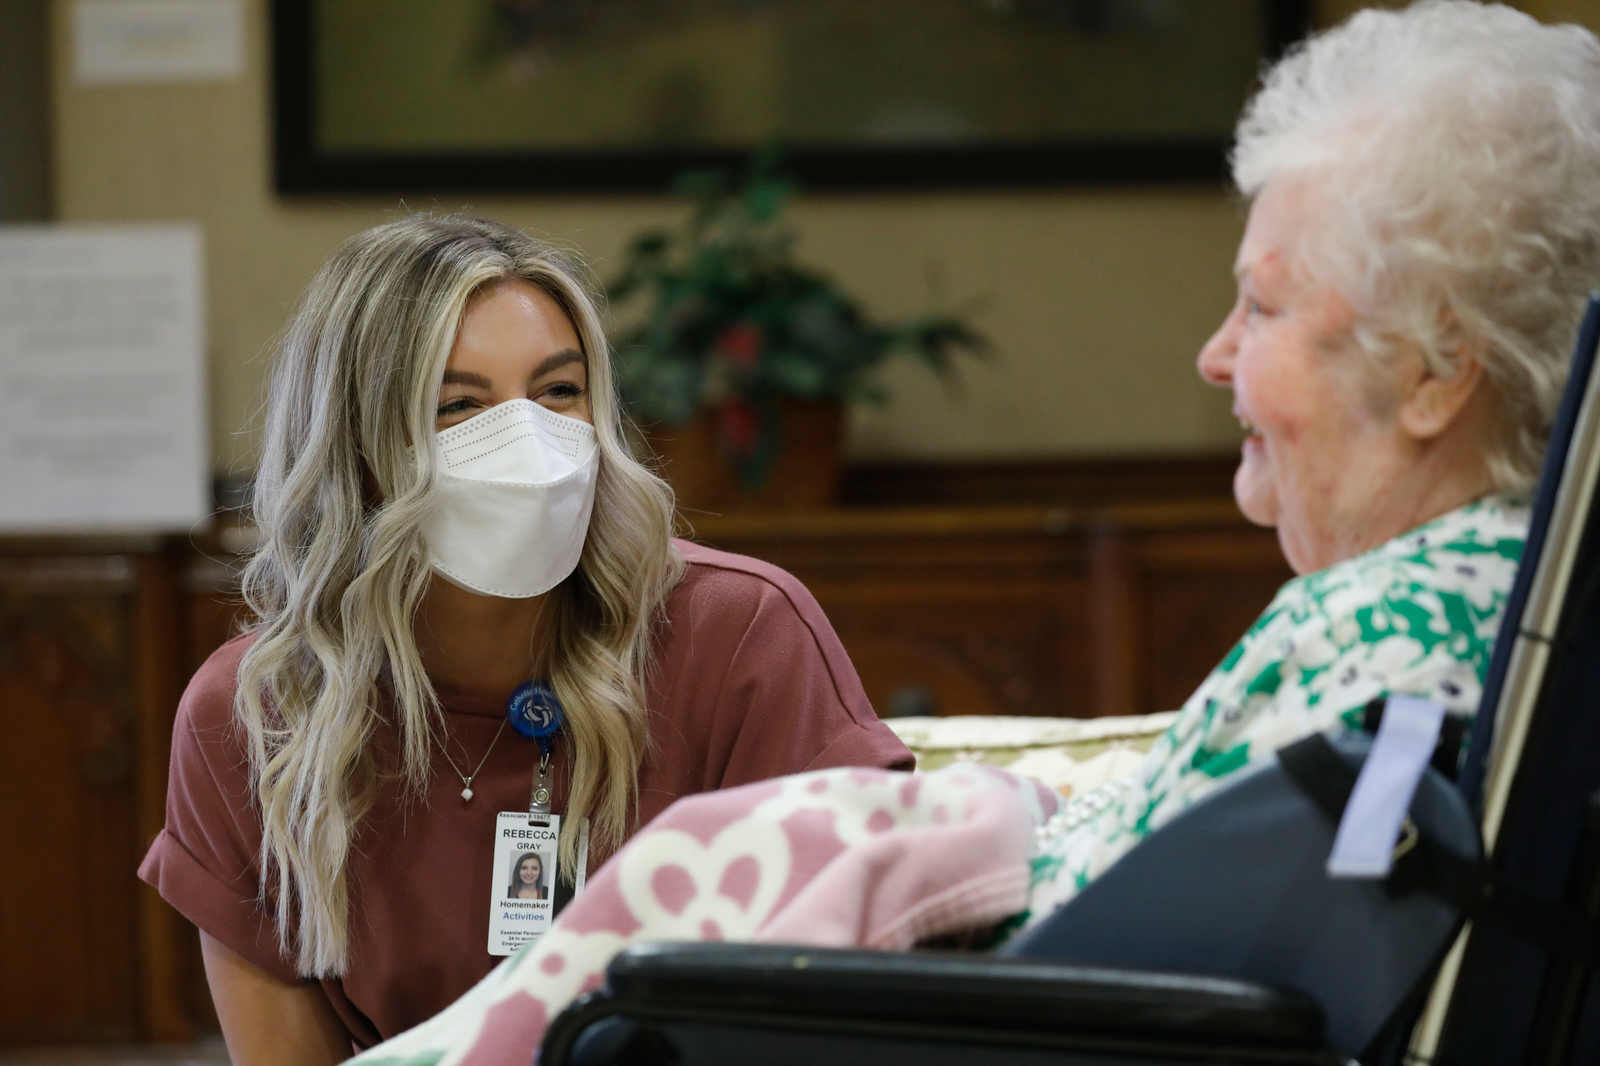 Worker meets with resident at nursing home.